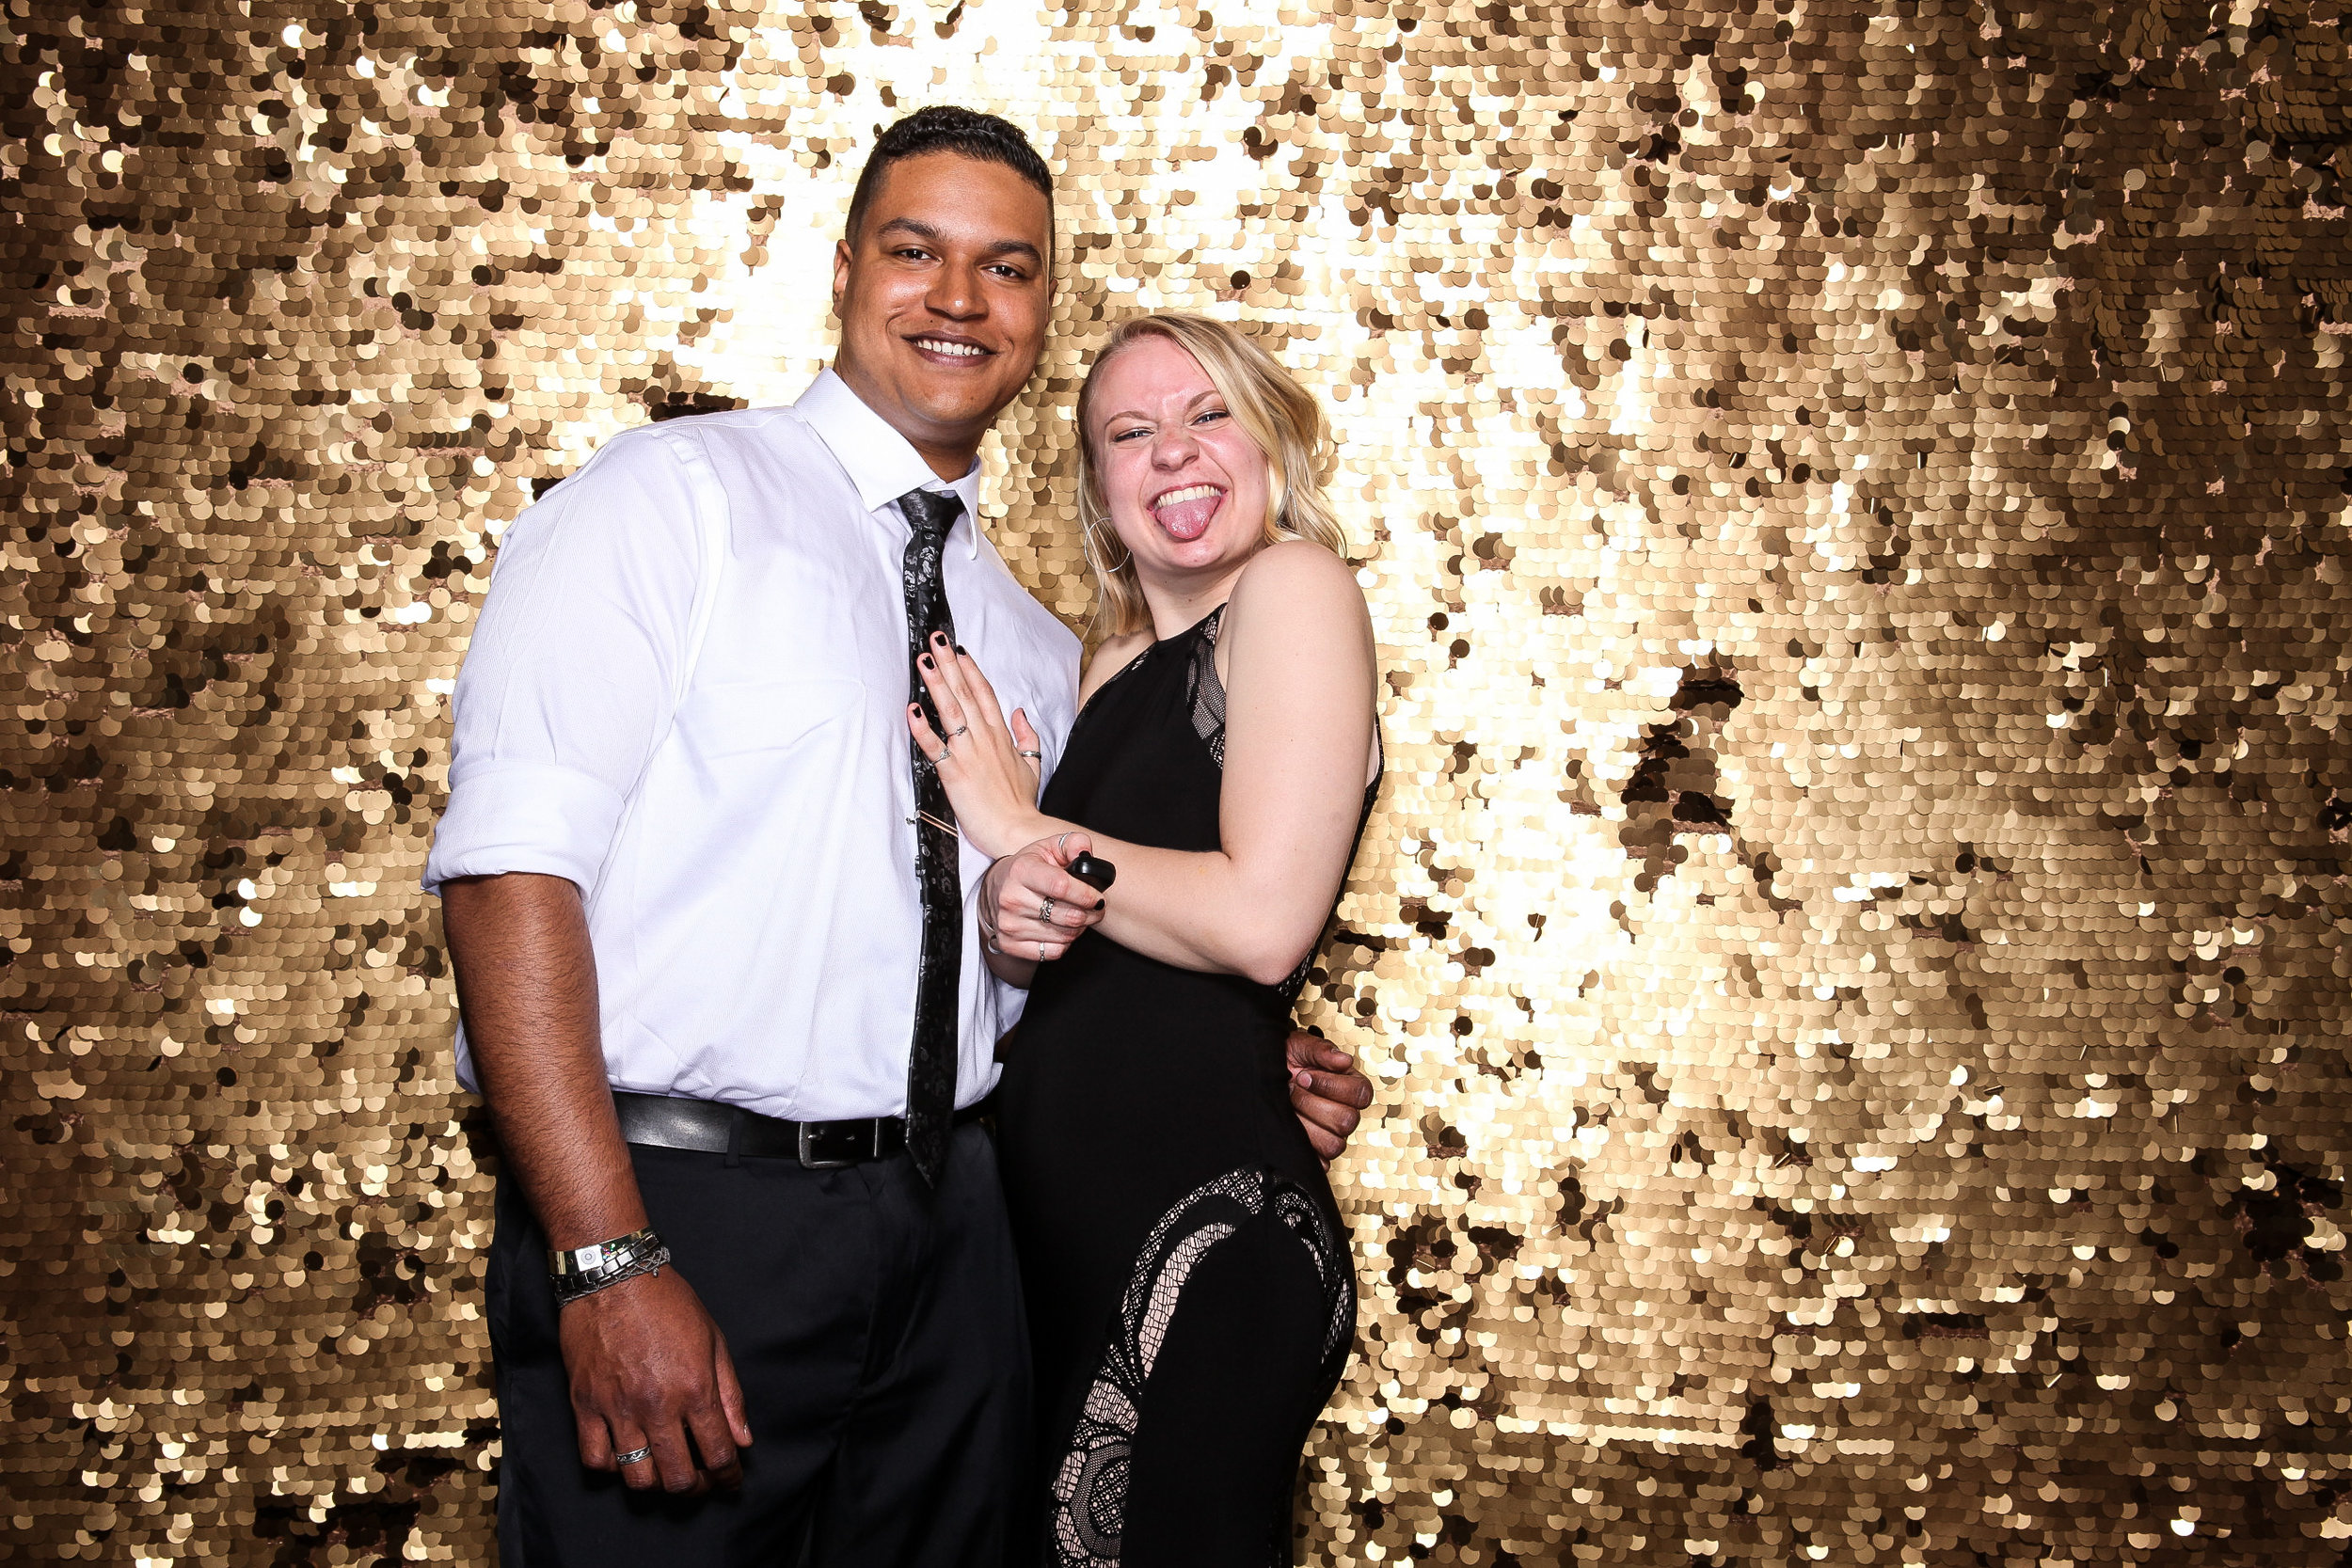 20190503_Adelphi_Senior_Formal-227.jpg